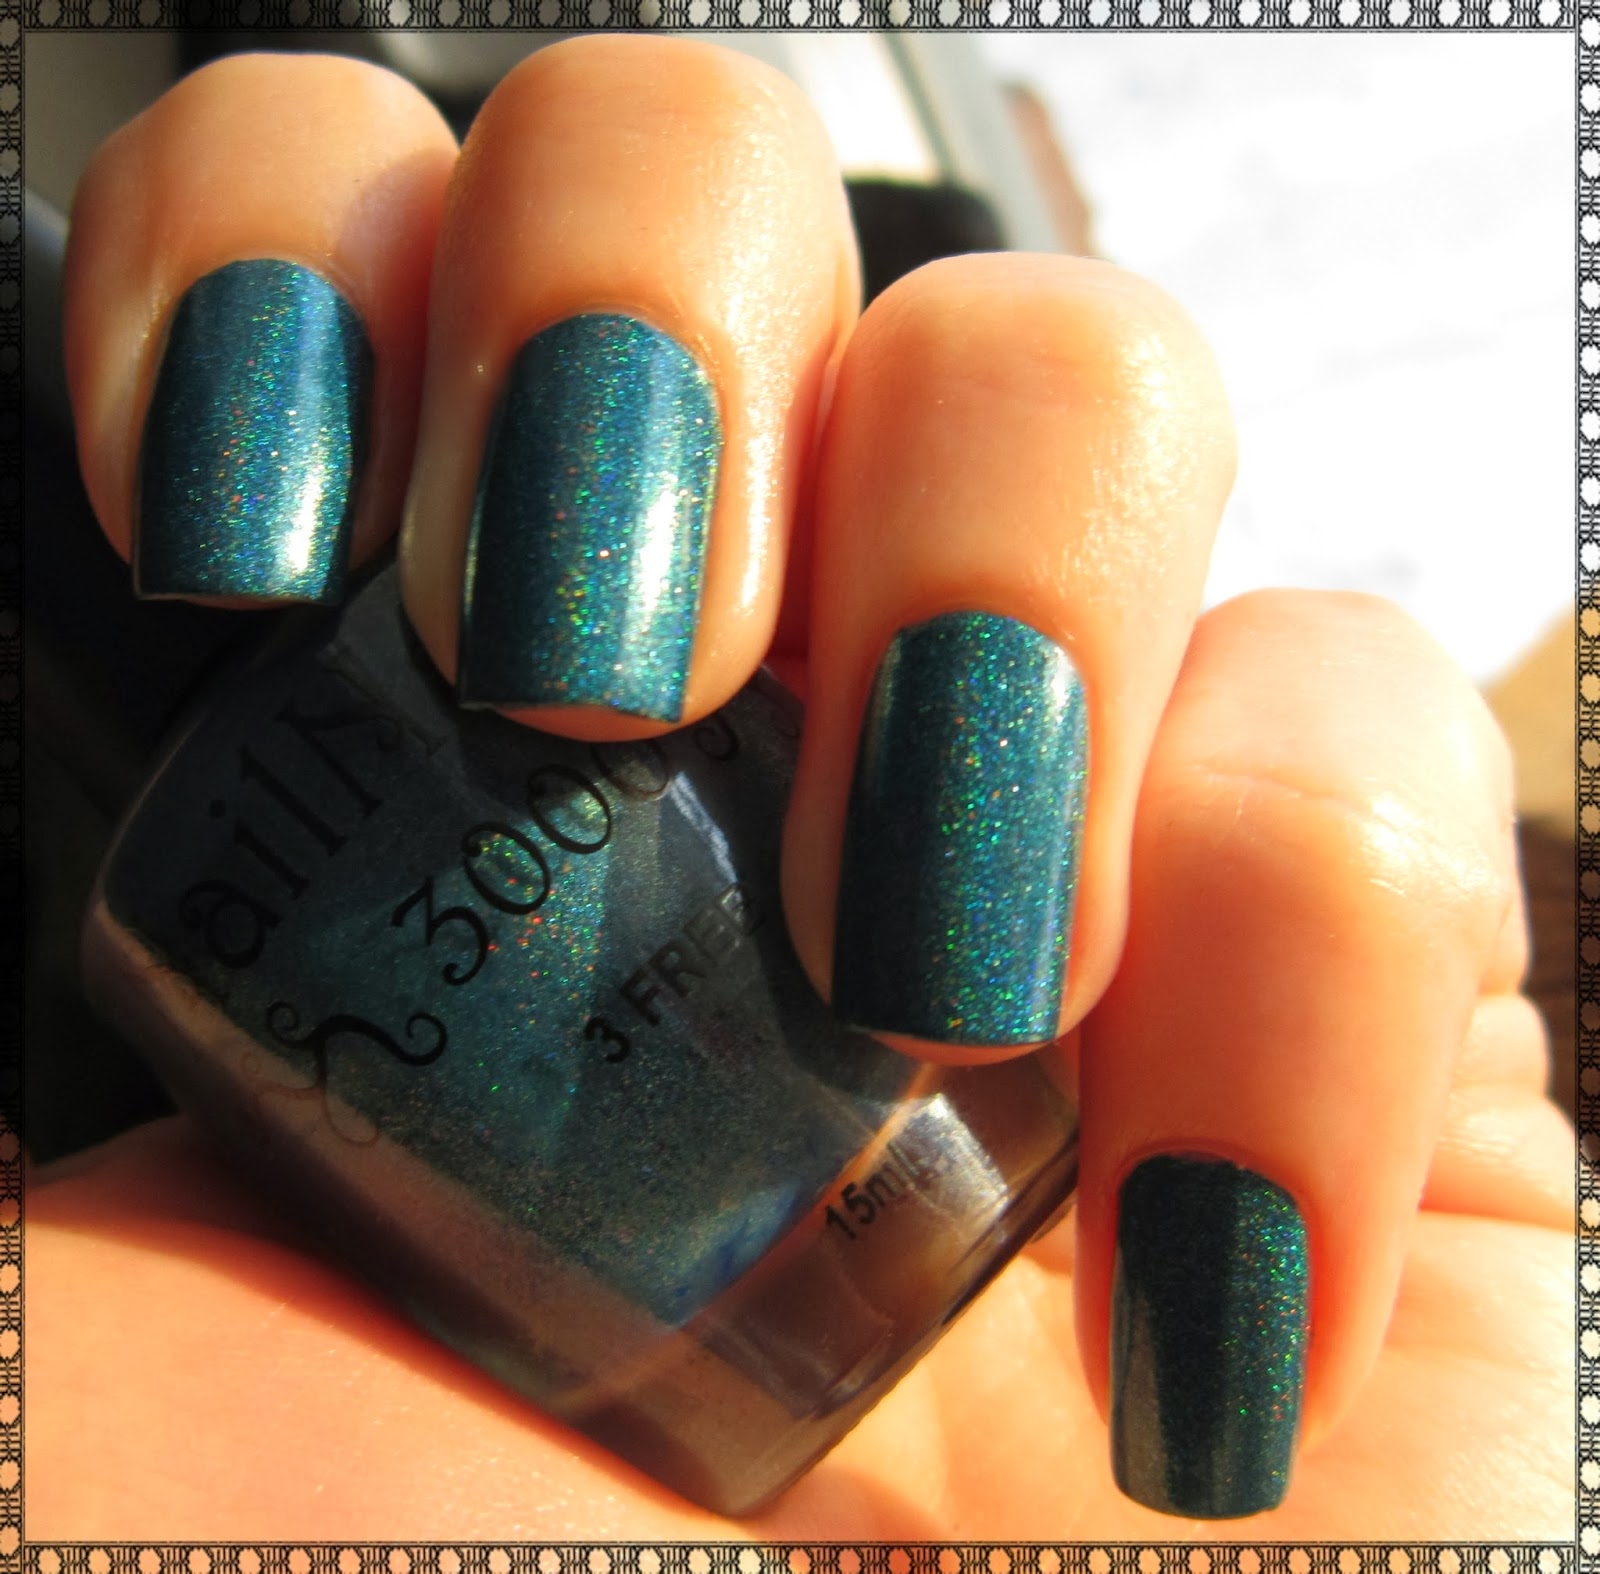 NailNation 3000 Can't Wait Teal Christmas